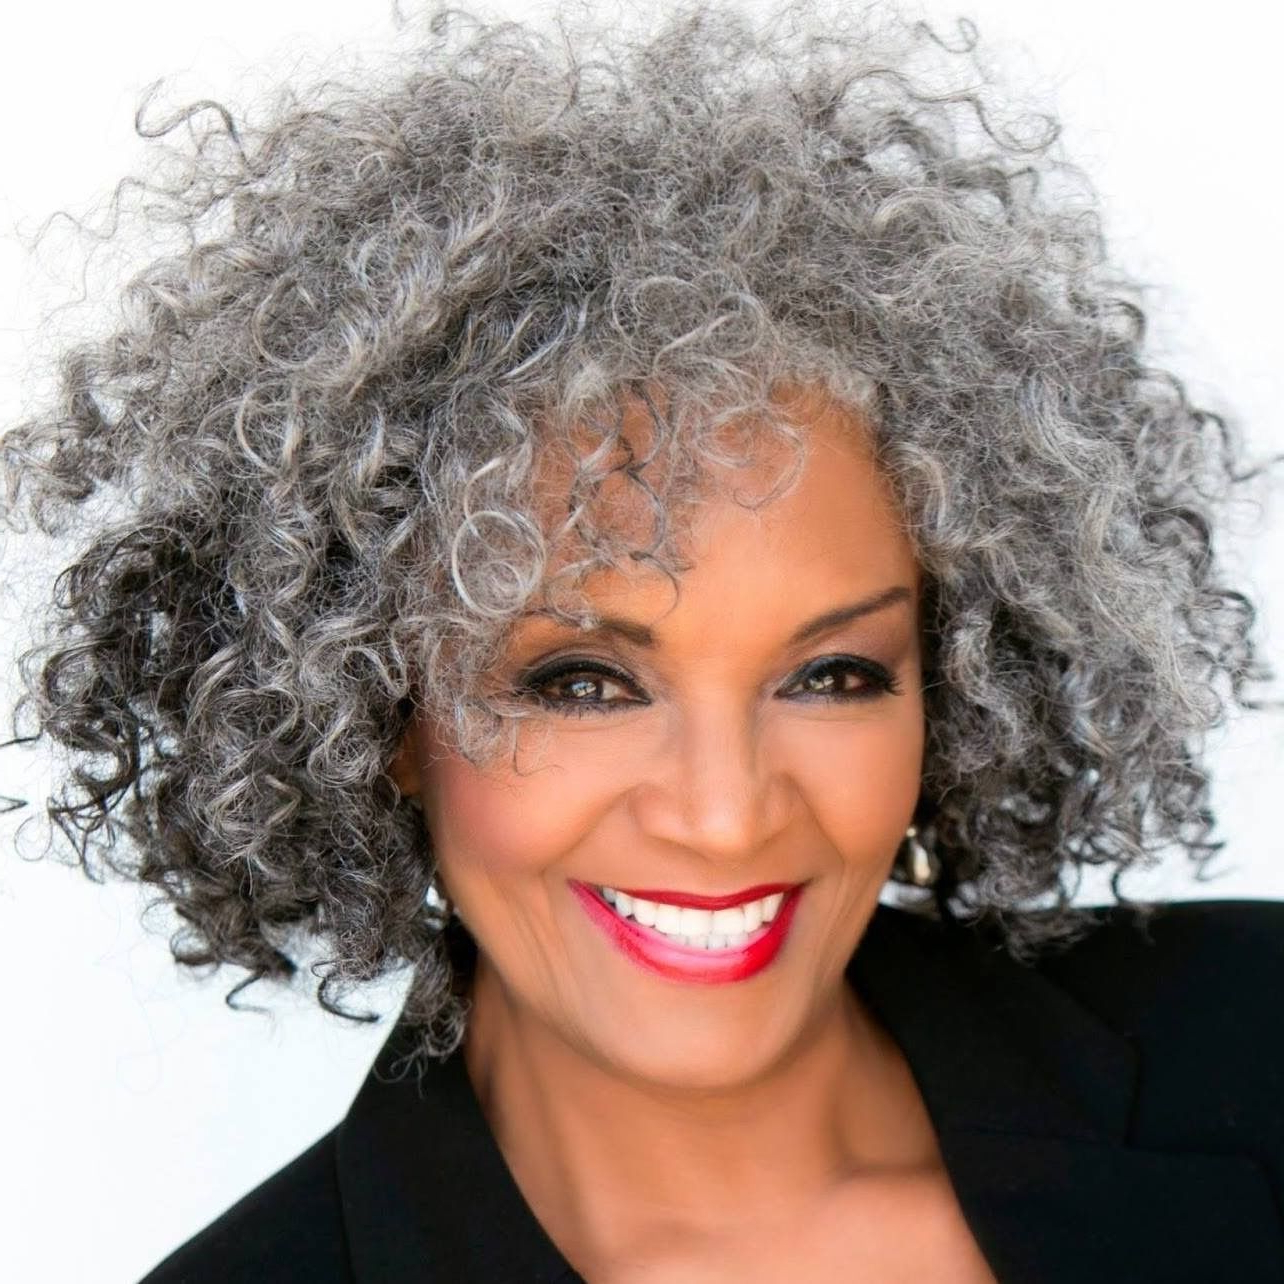 Love The Salt N Pepper Hair | Hairstyles In 2018 | Pinterest | Hair Inside Short Hairstyles For Black Women With Gray Hair (View 9 of 25)